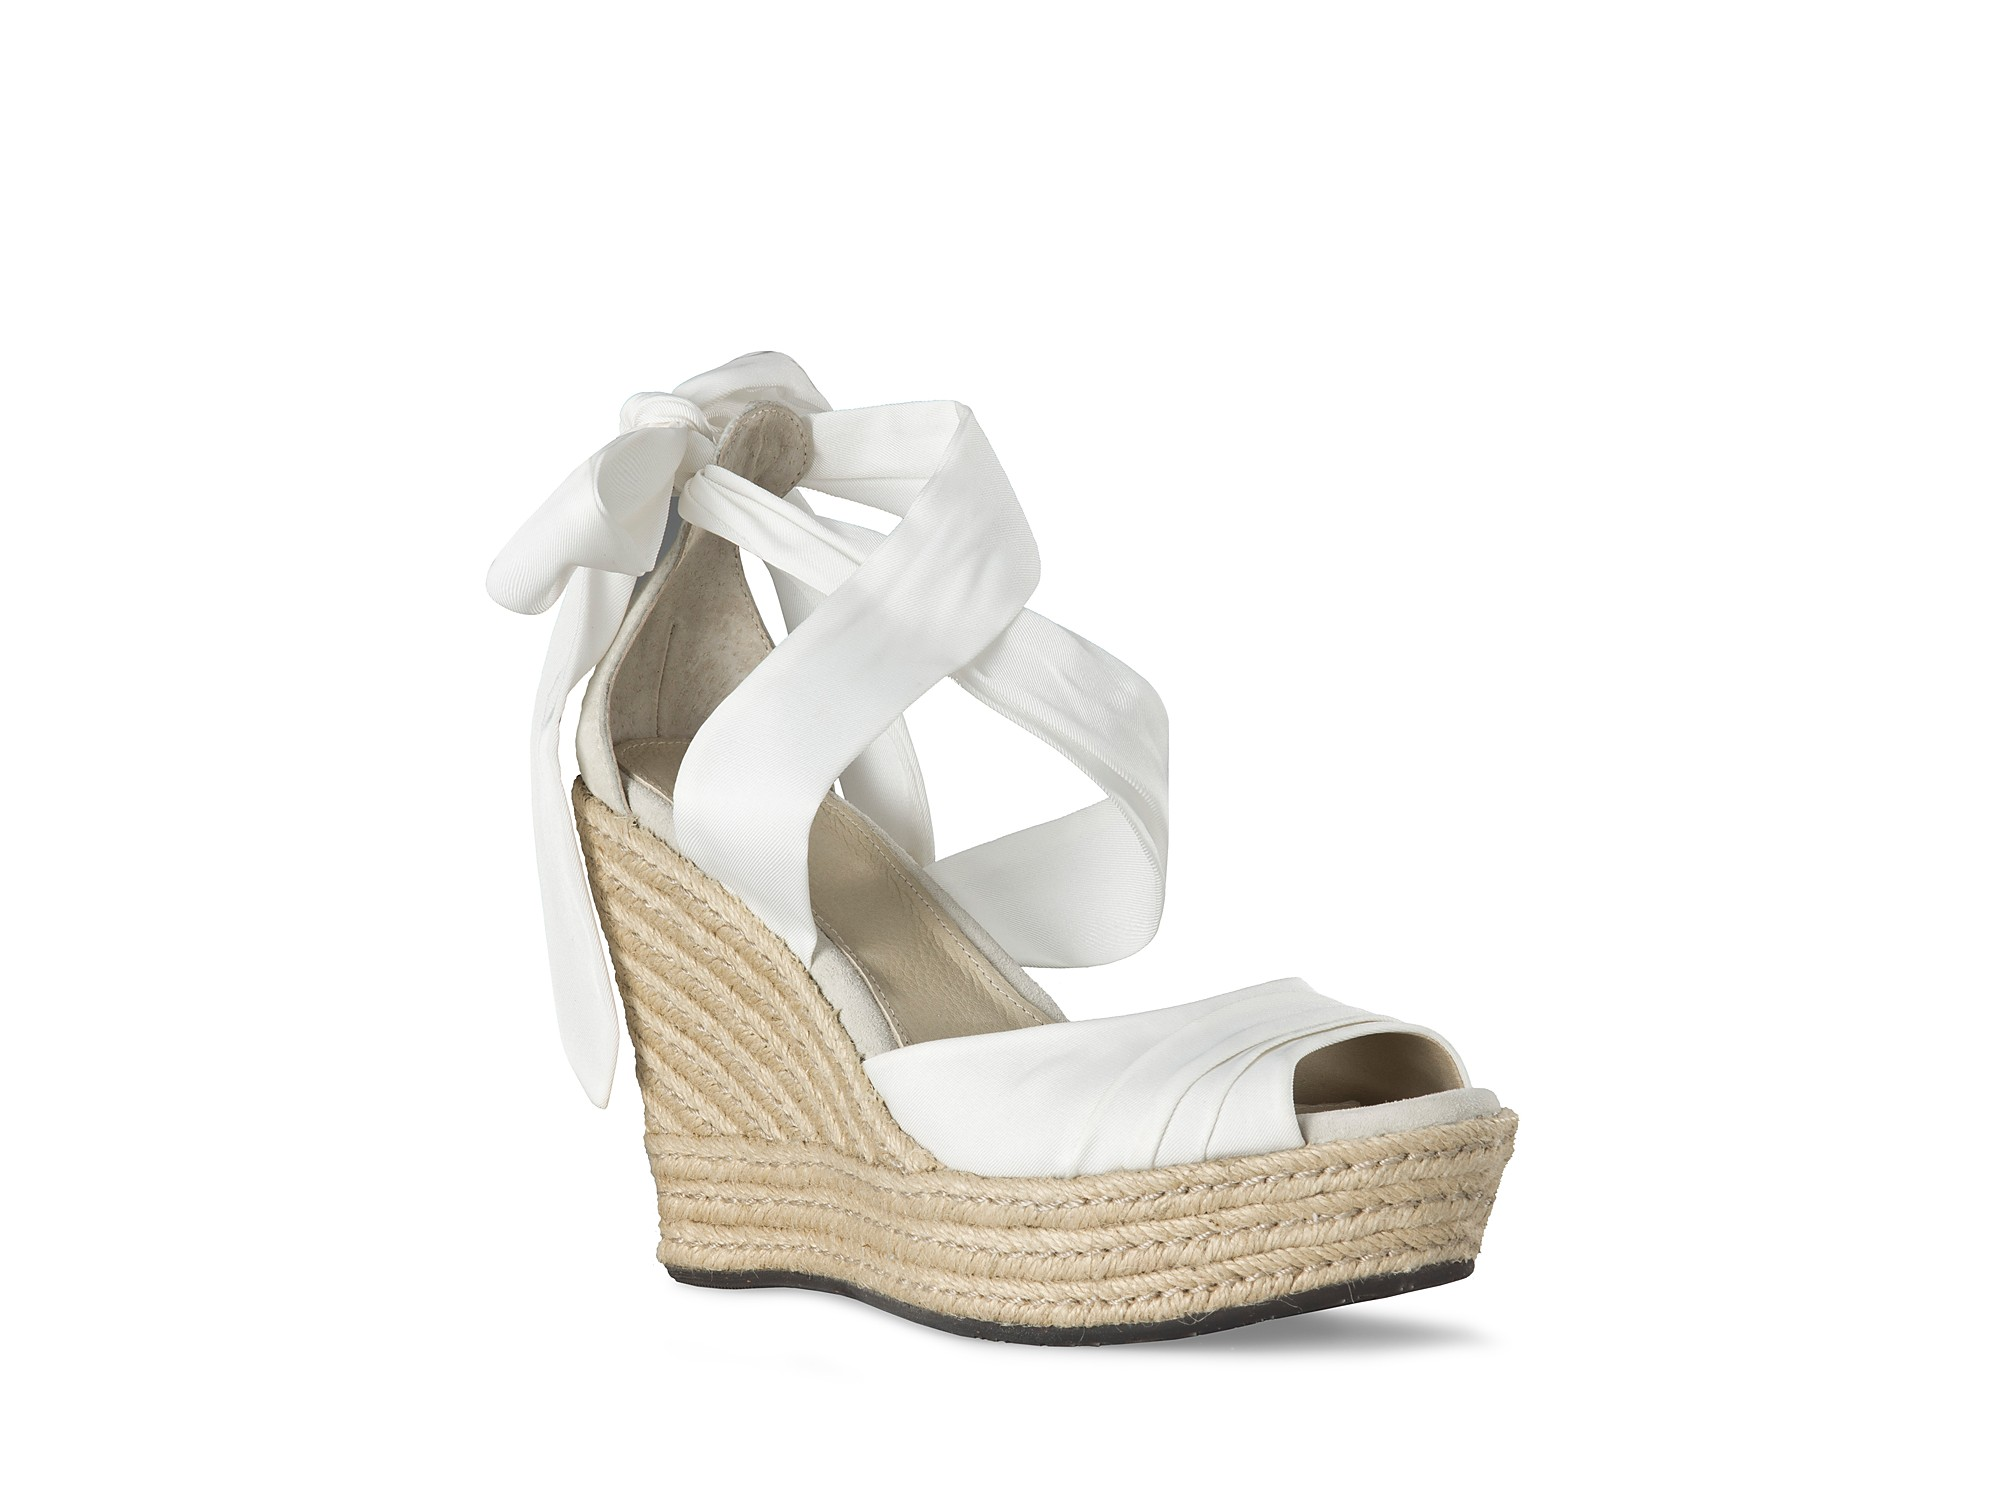 Get the best deals on kelly & katie wedges and save up to 70% off at Poshmark now! Whatever you're shopping for, we've got it.